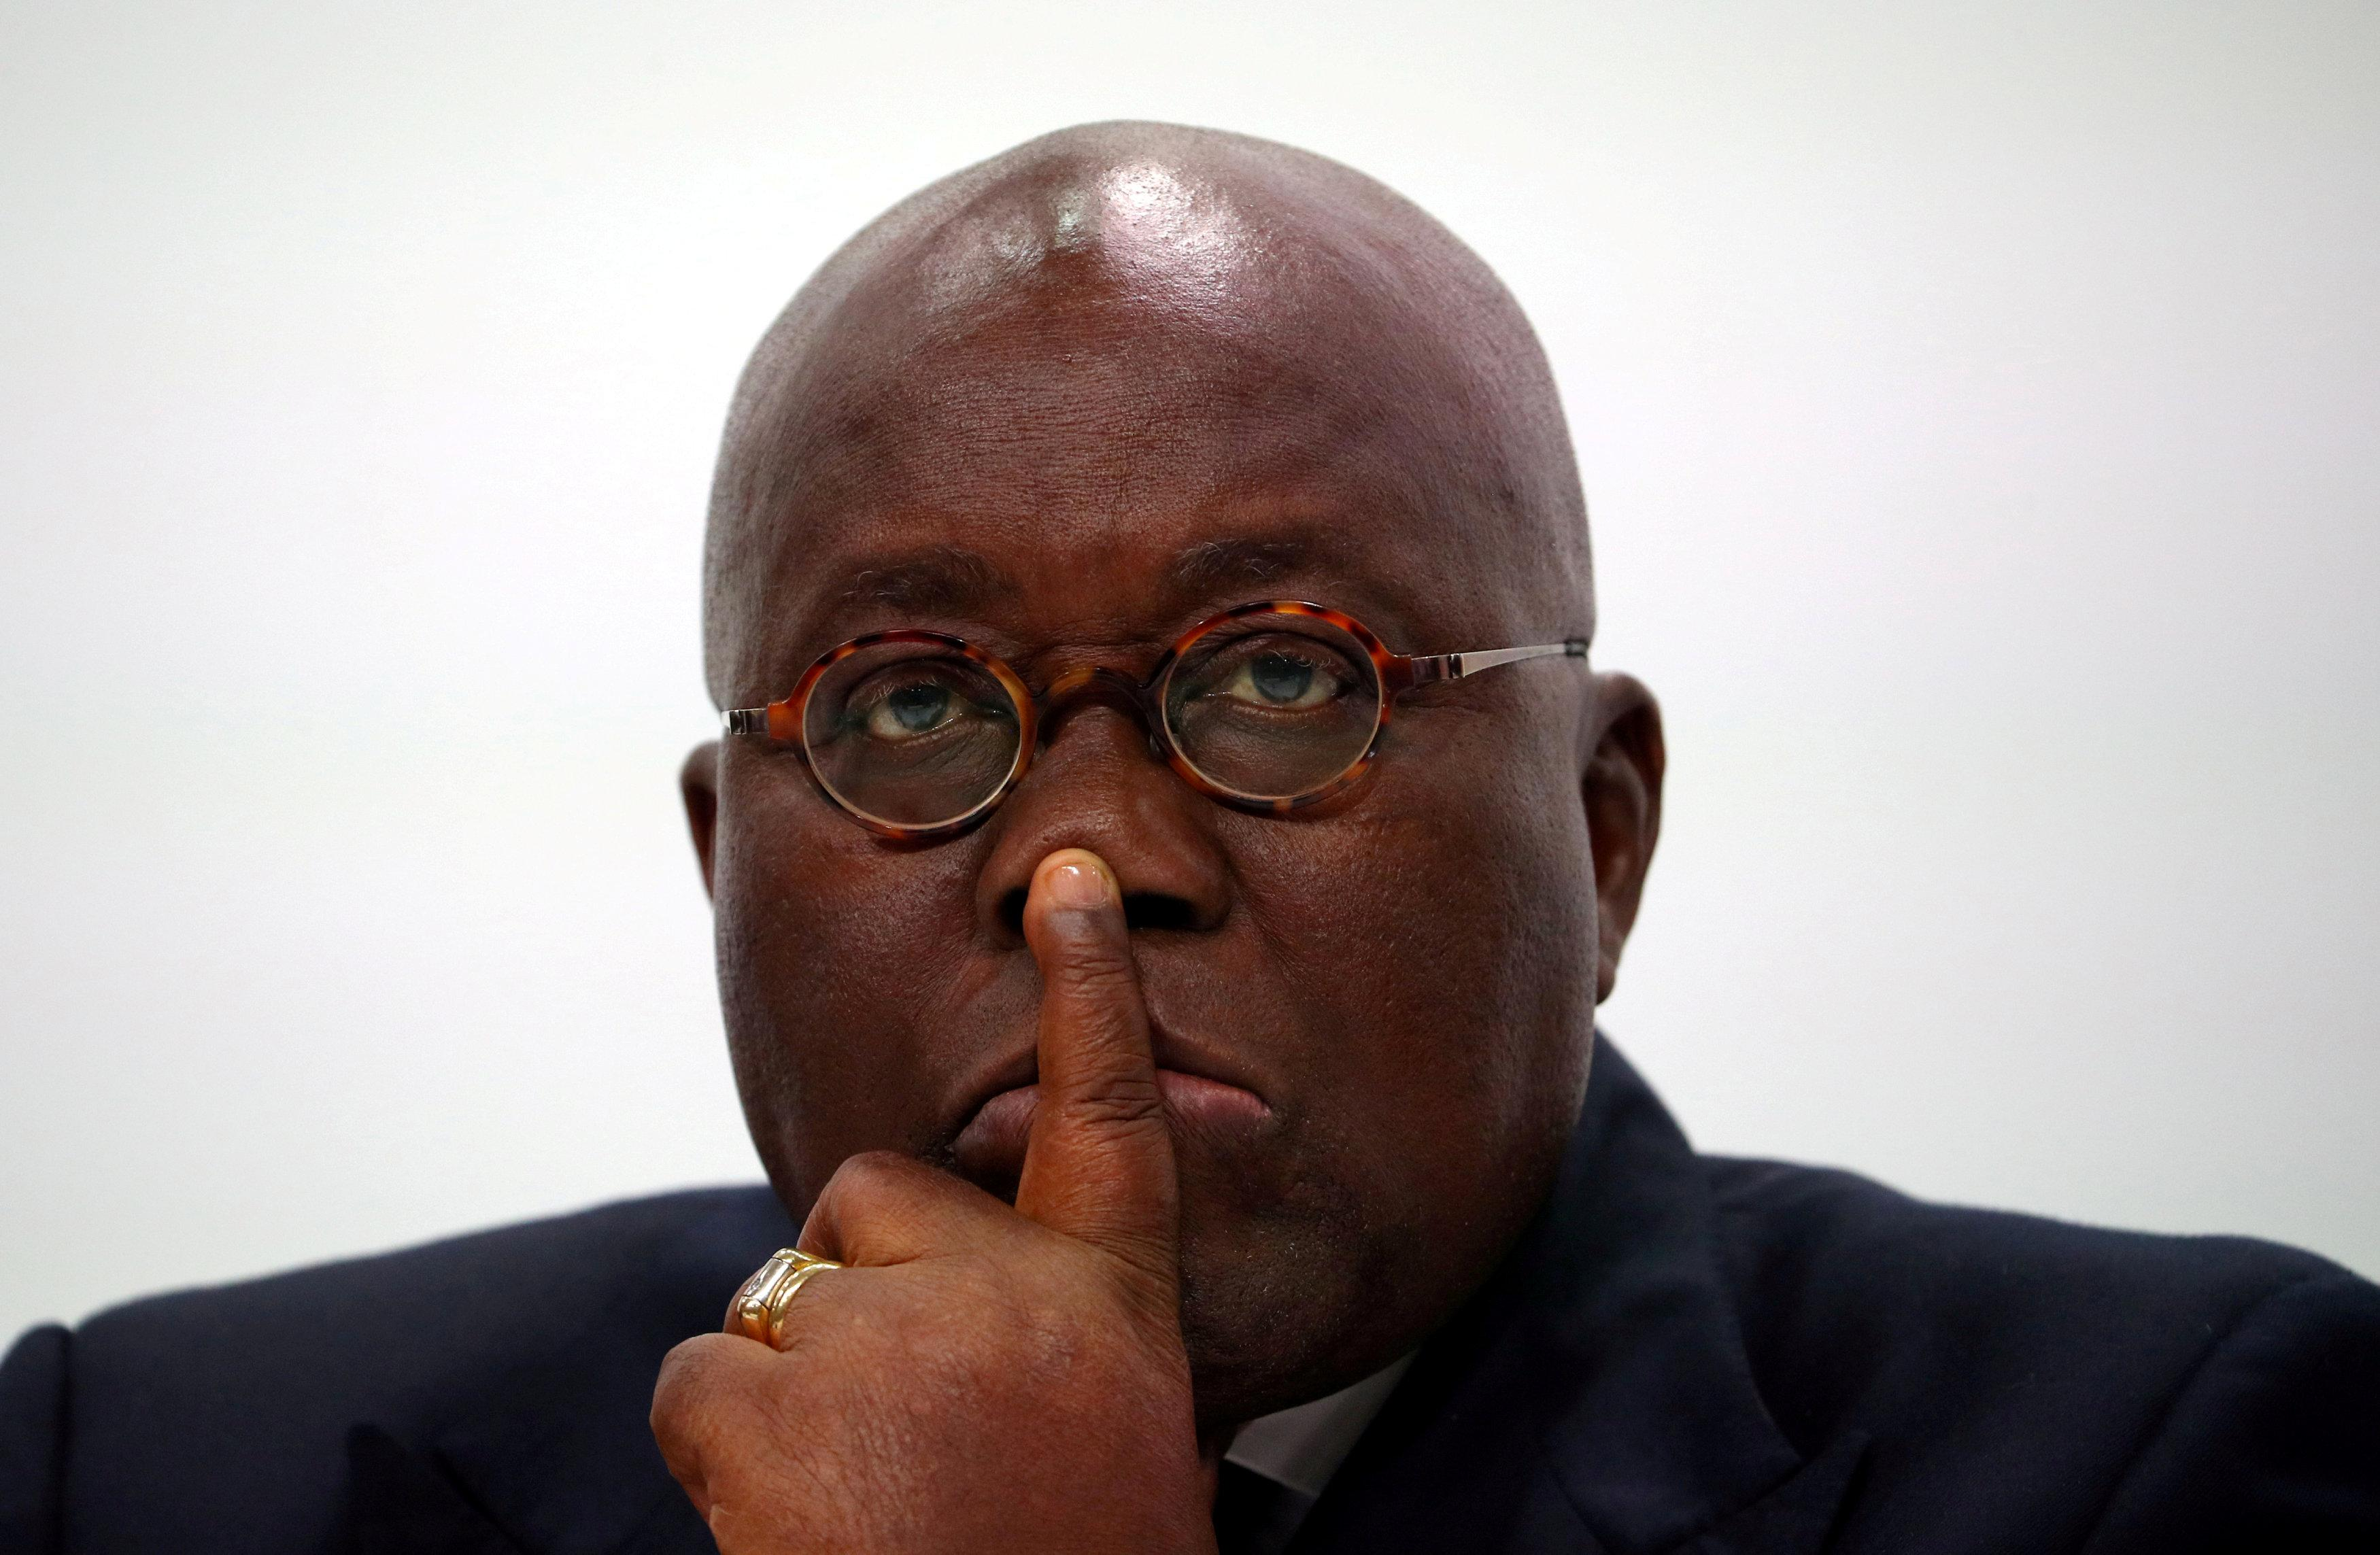 Ghana's President Nana Addo Dankwa Akufo-Addo listens during a news conference to mark the end of the Commonwealth Heads of Government Meeting at Marlborough House in London, Britain, April 20, 2018. Hannah McKay